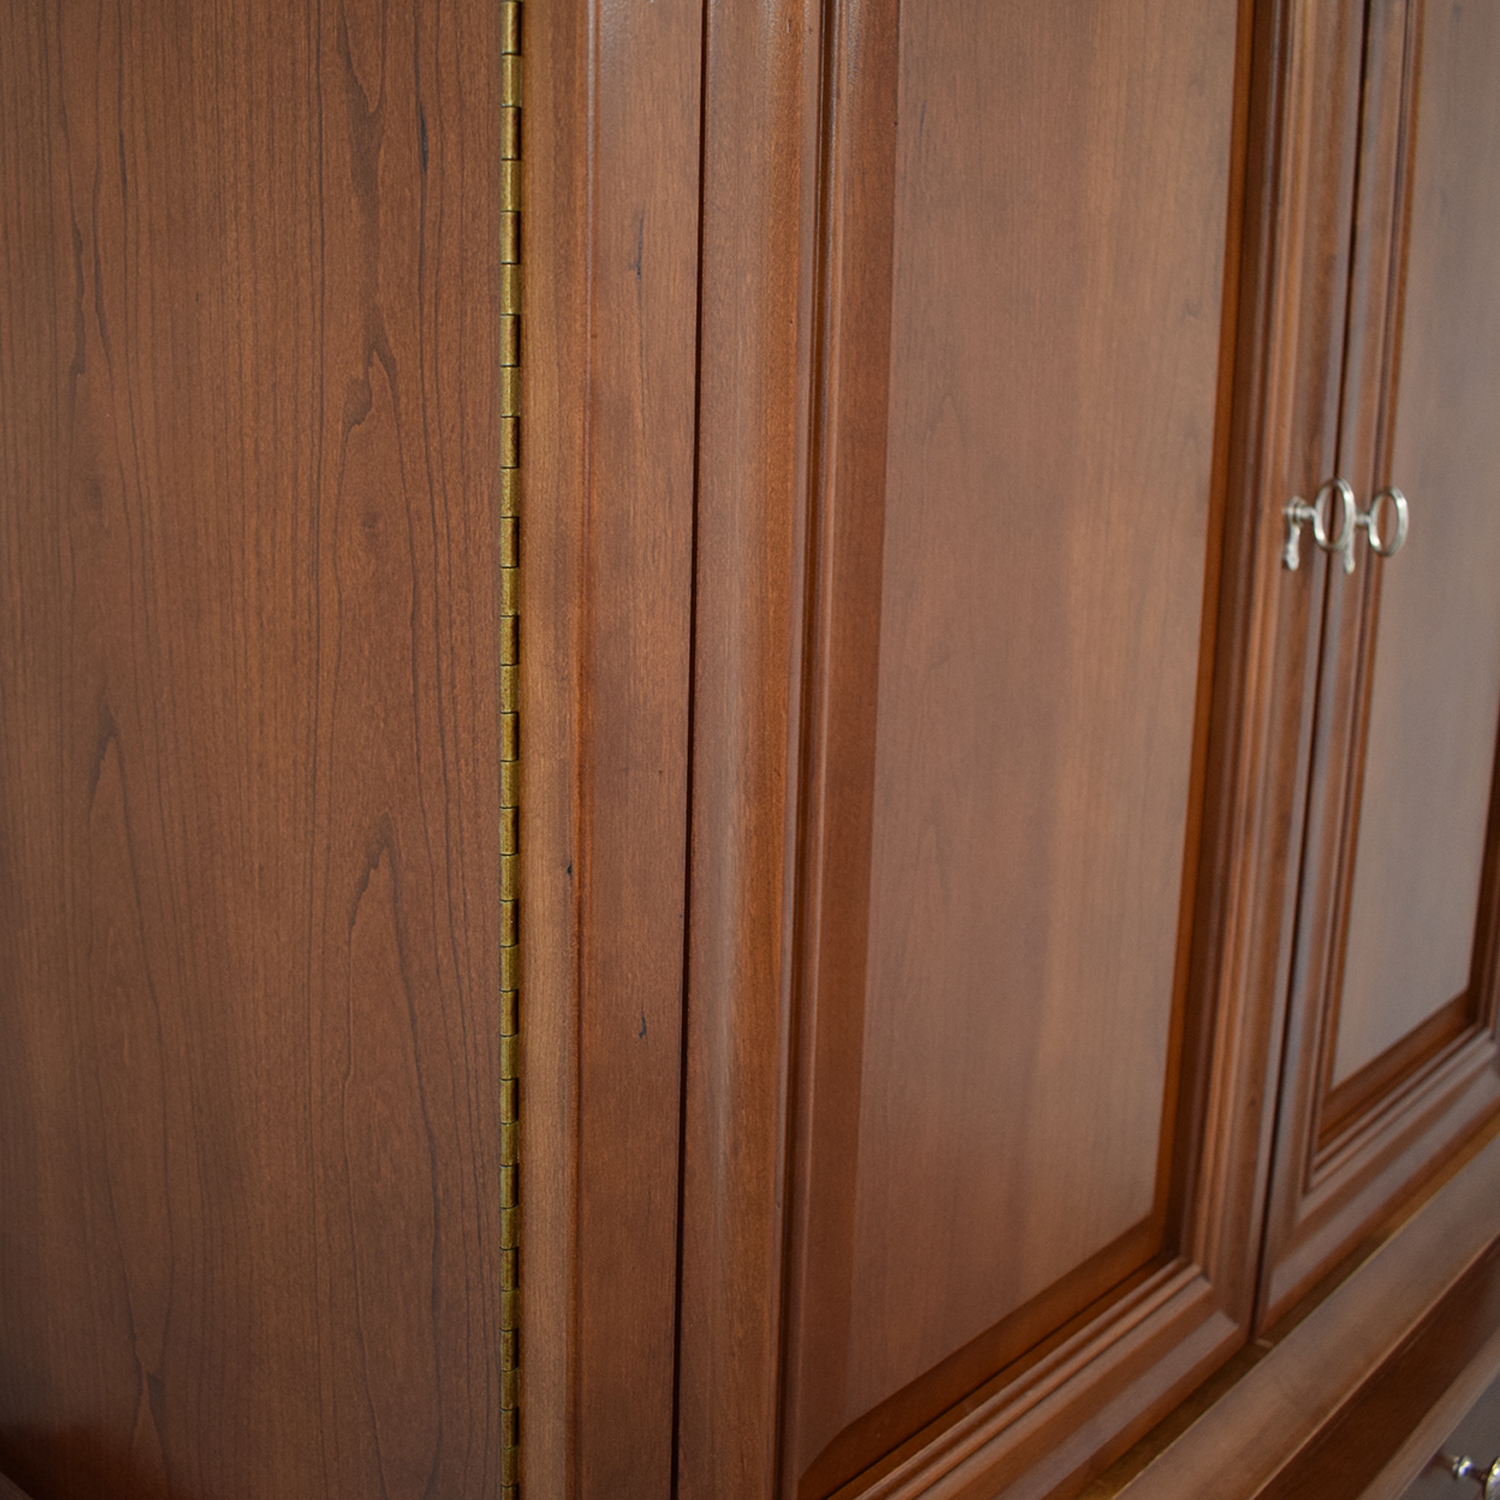 Stanley Furniture Stanley Furniture Armoire on sale